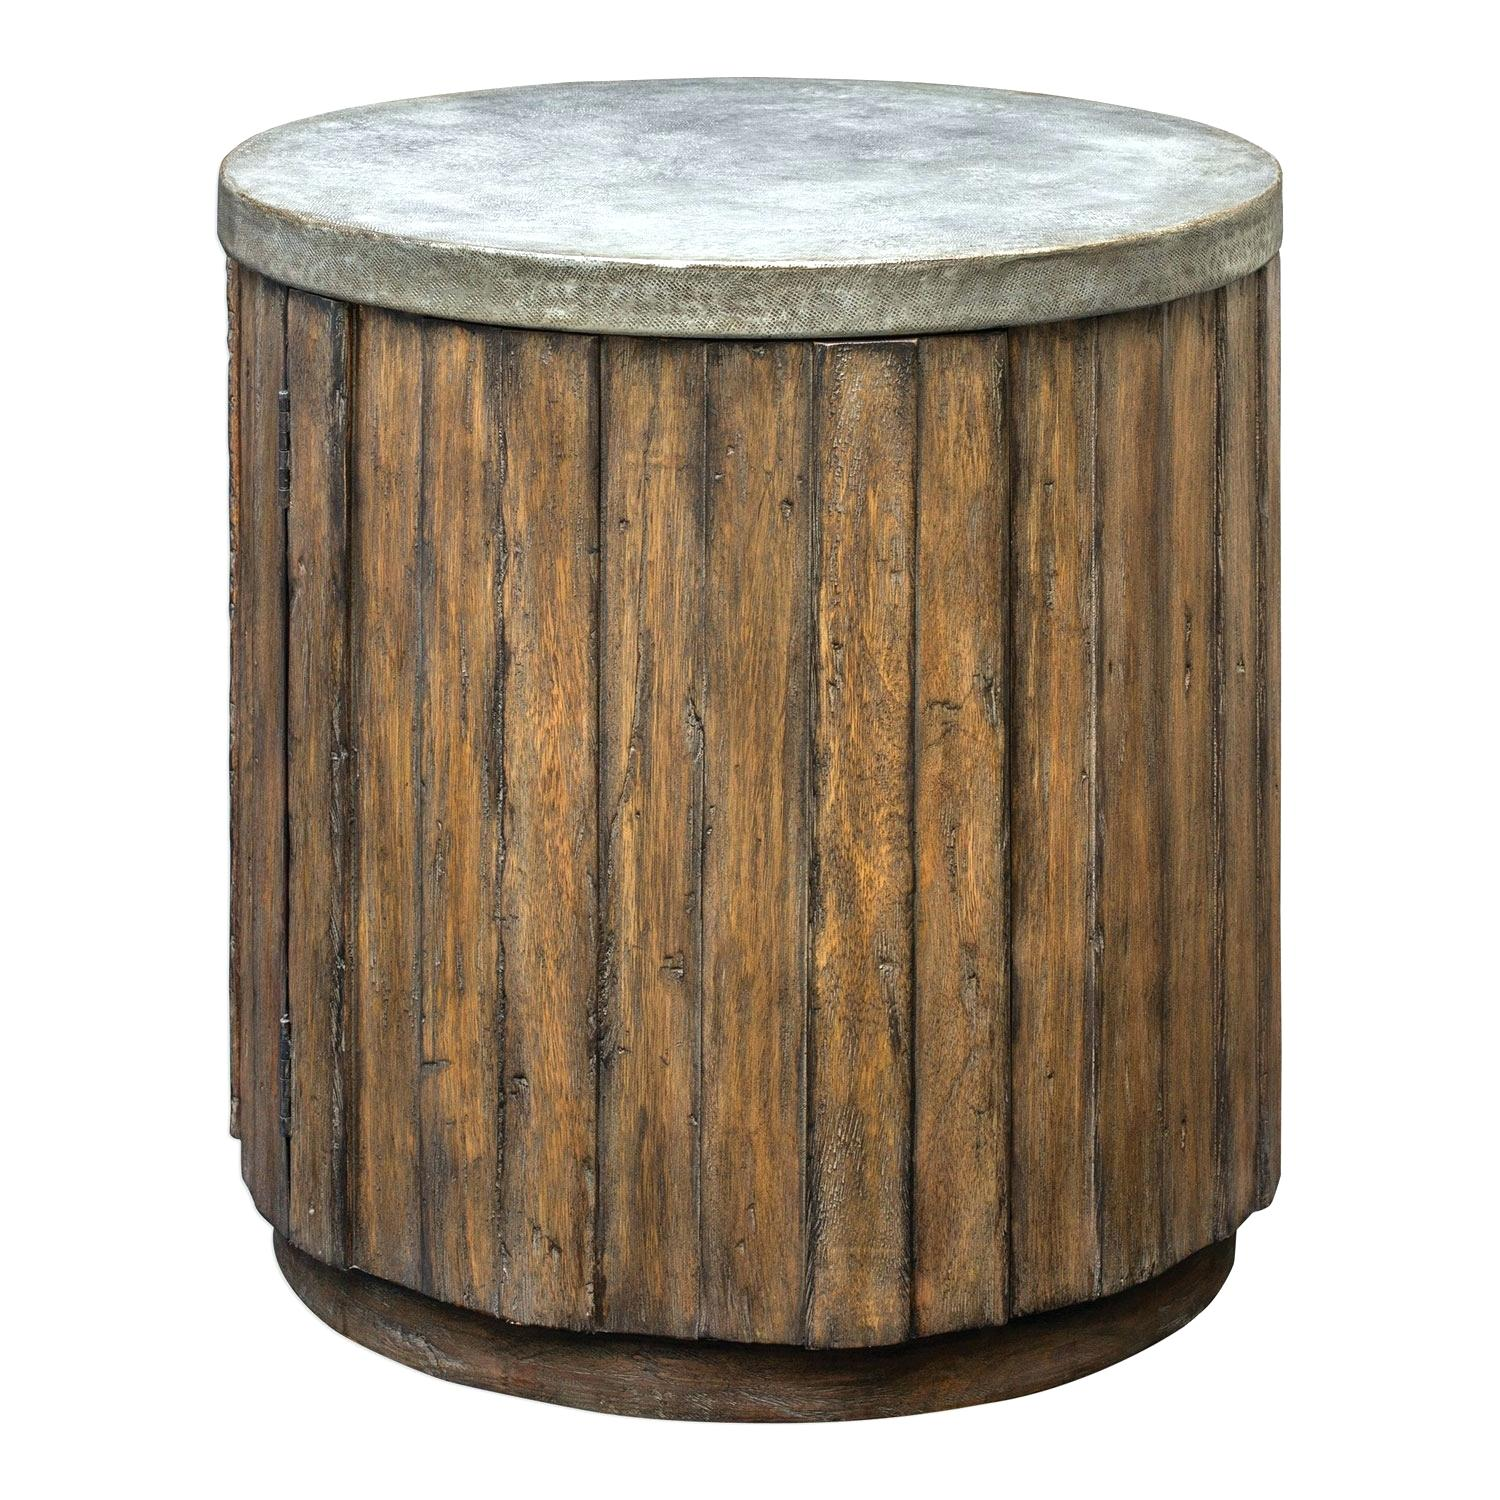 drum accent table threshold metal target cylinder side manila brass silver brown battery powered led lamp lamps resin furniture round outdoor frog painted wood counter height